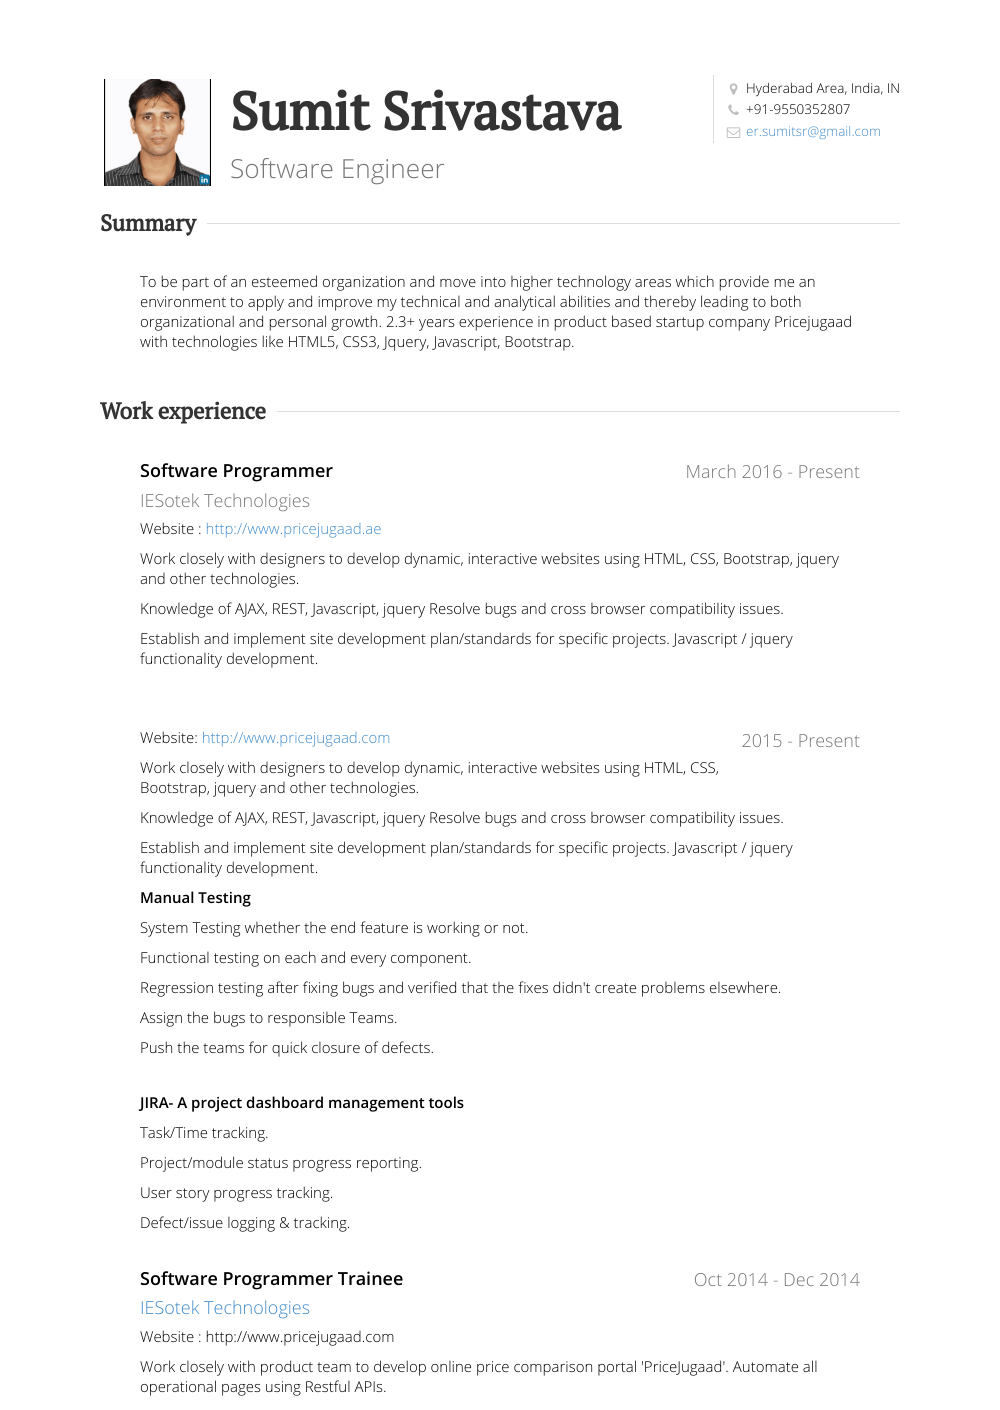 Software Programmer - Resume Samples & Templates | VisualCV